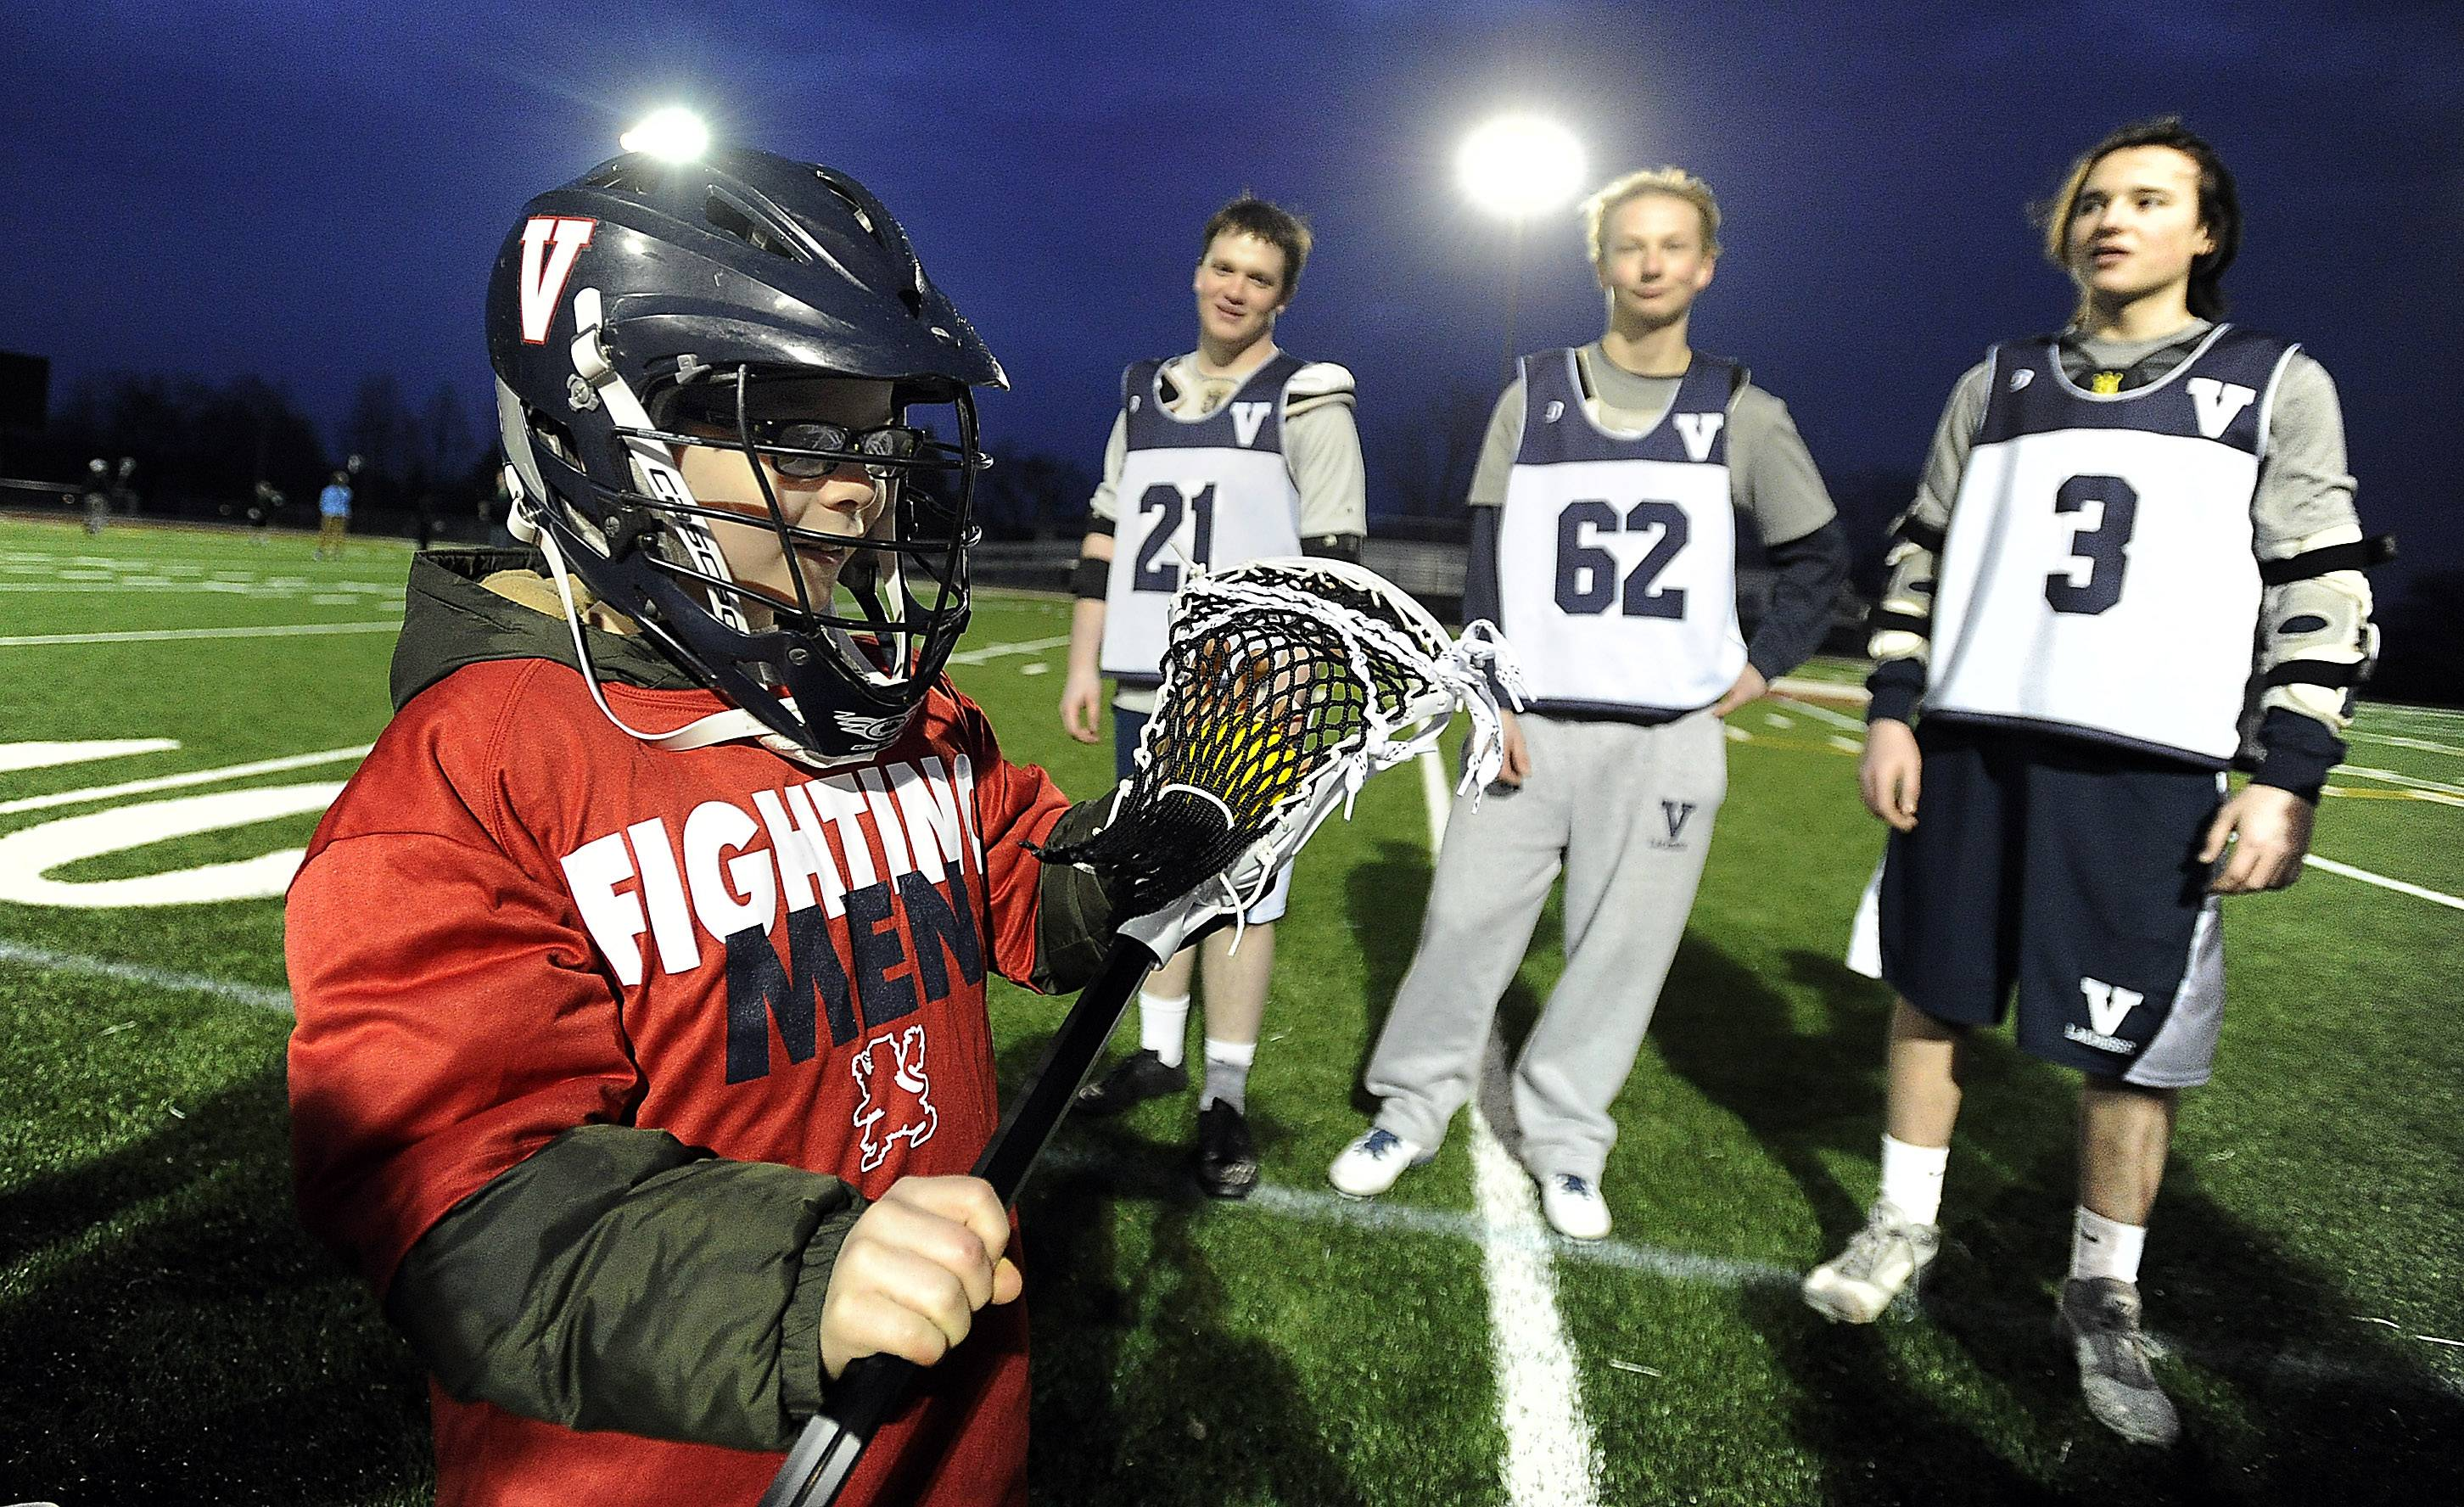 The St. Viator boys lacrosse team honored 8-year-old Dylan Full, who has been battling cancer, as part of Friday's game against Marian Catholic at Forest View Educational Center. Here, Lions players Kevin McMahon, Peter Schmidt and Brian Julius watch as Full looks over his new equipment.